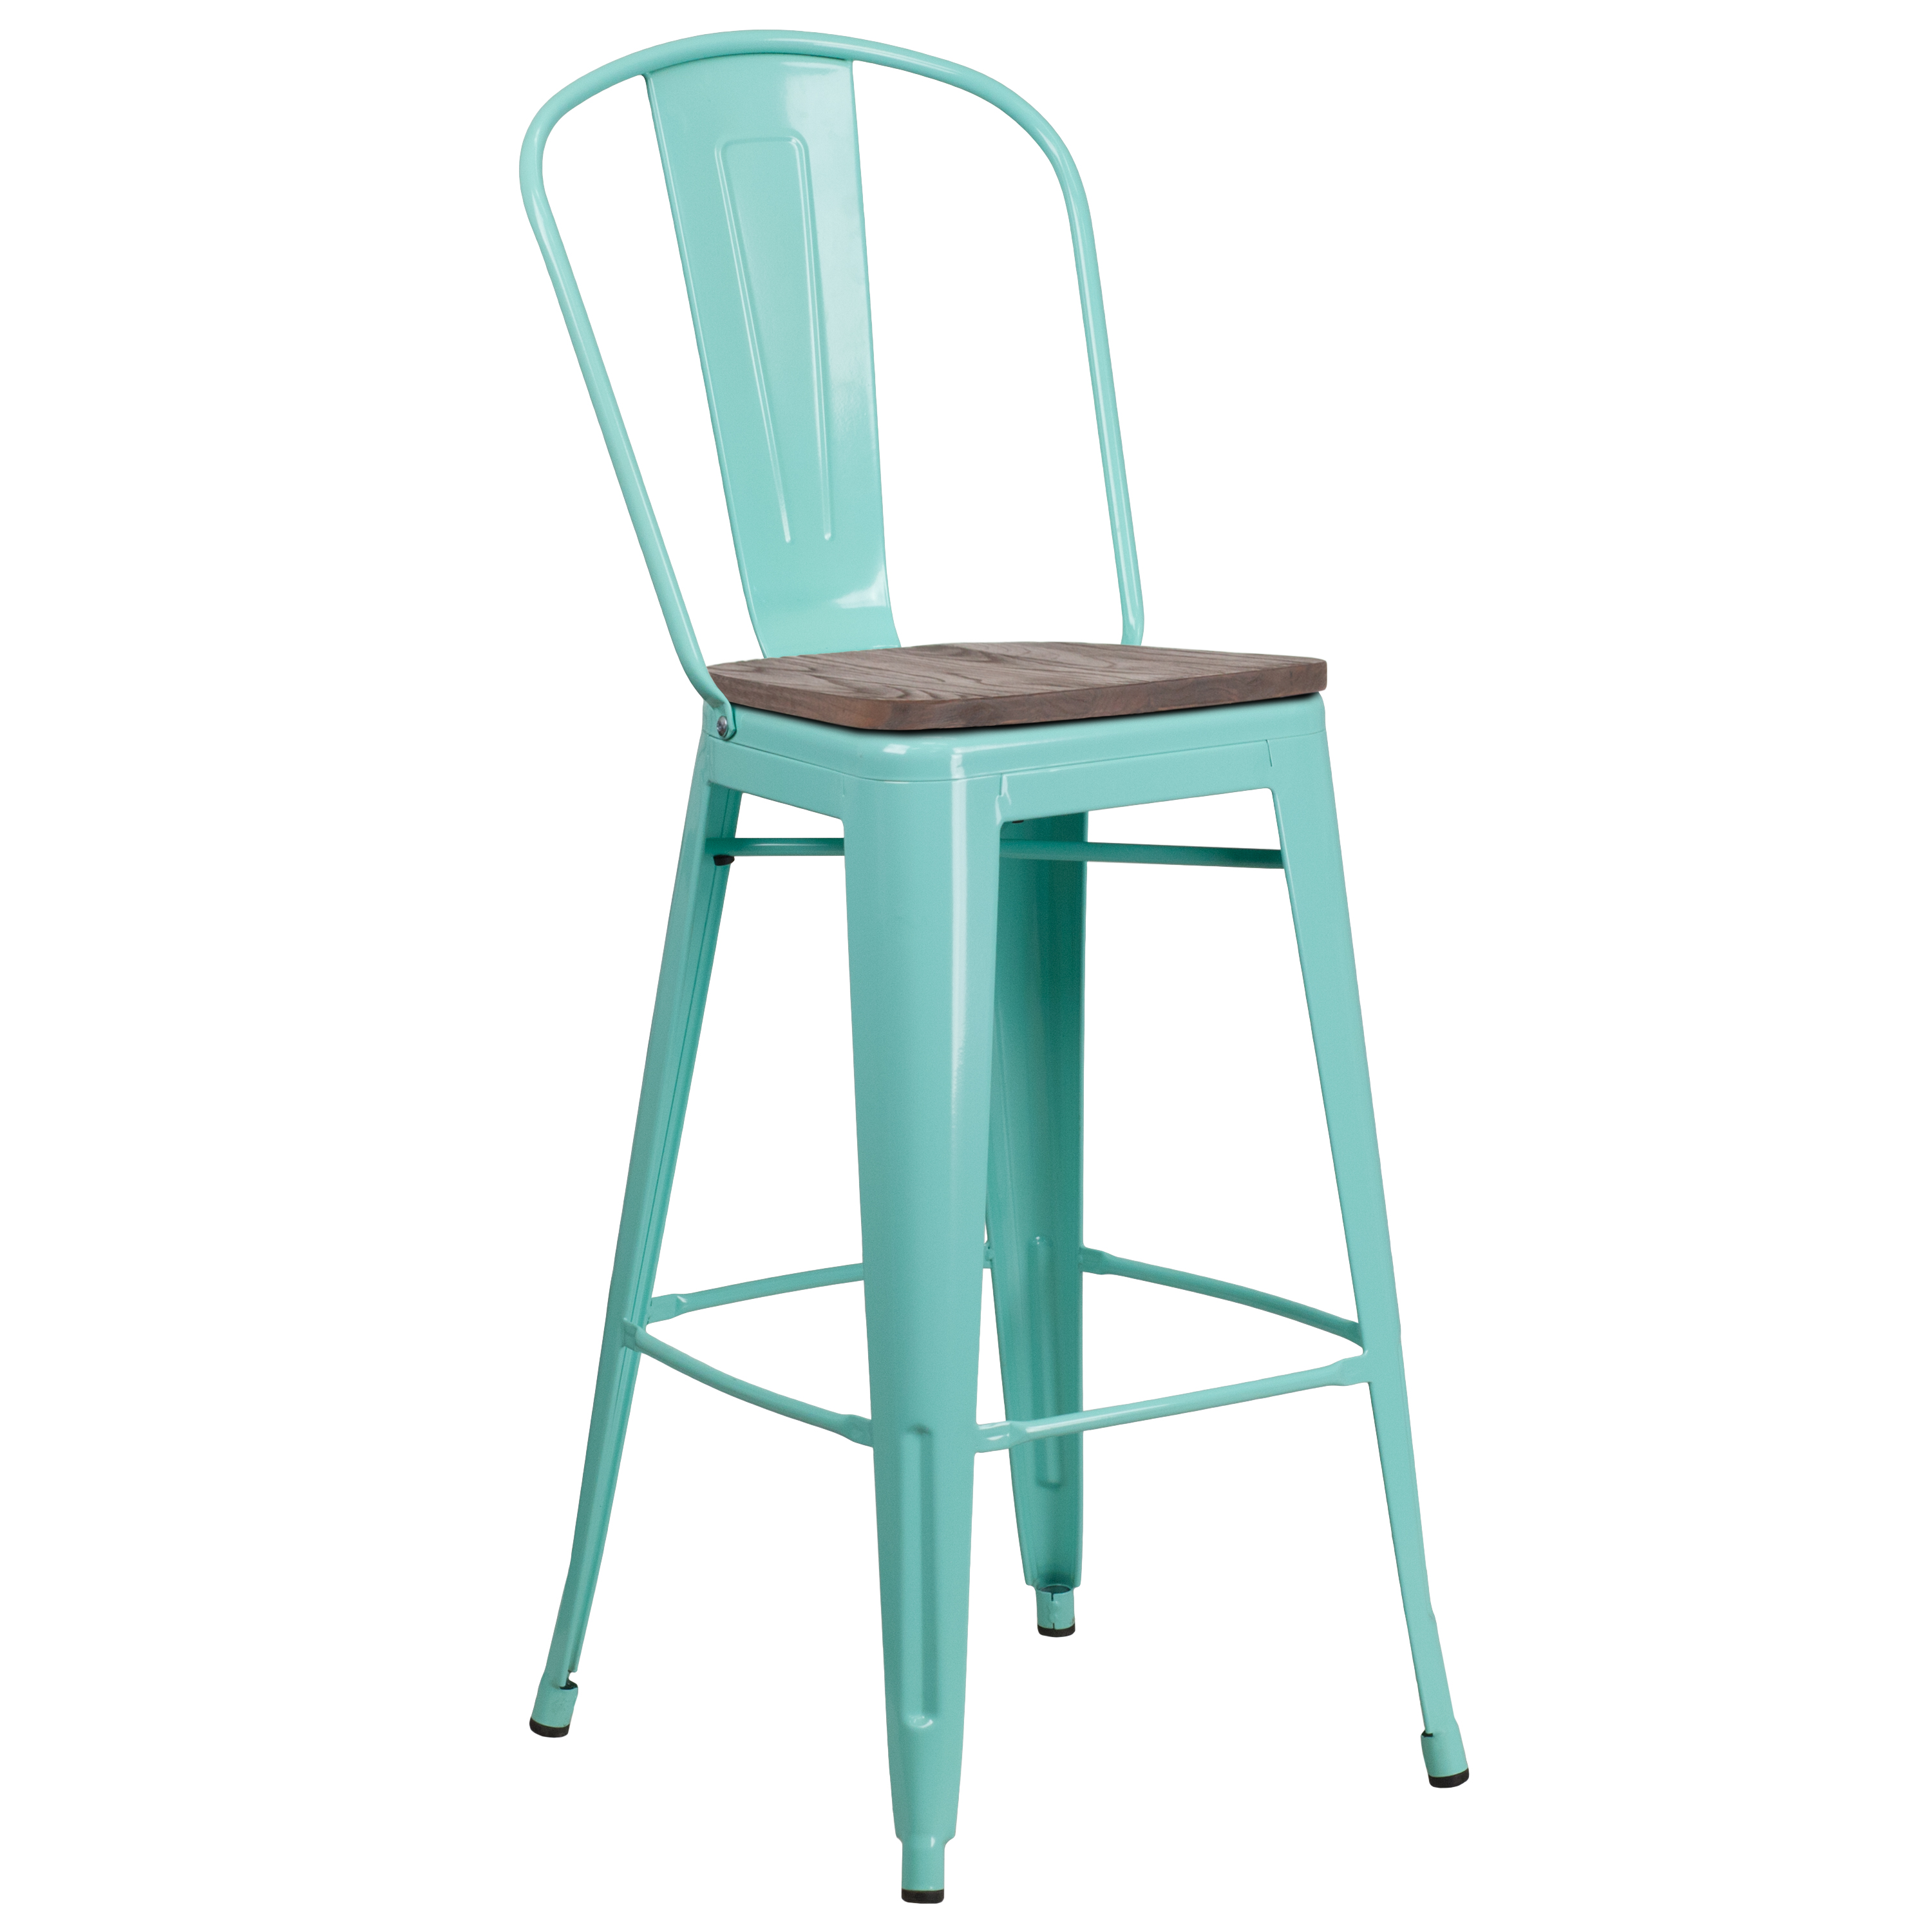 Flash Furniture 30 High Mint Green Metal Barstool With Back And Wood Seat